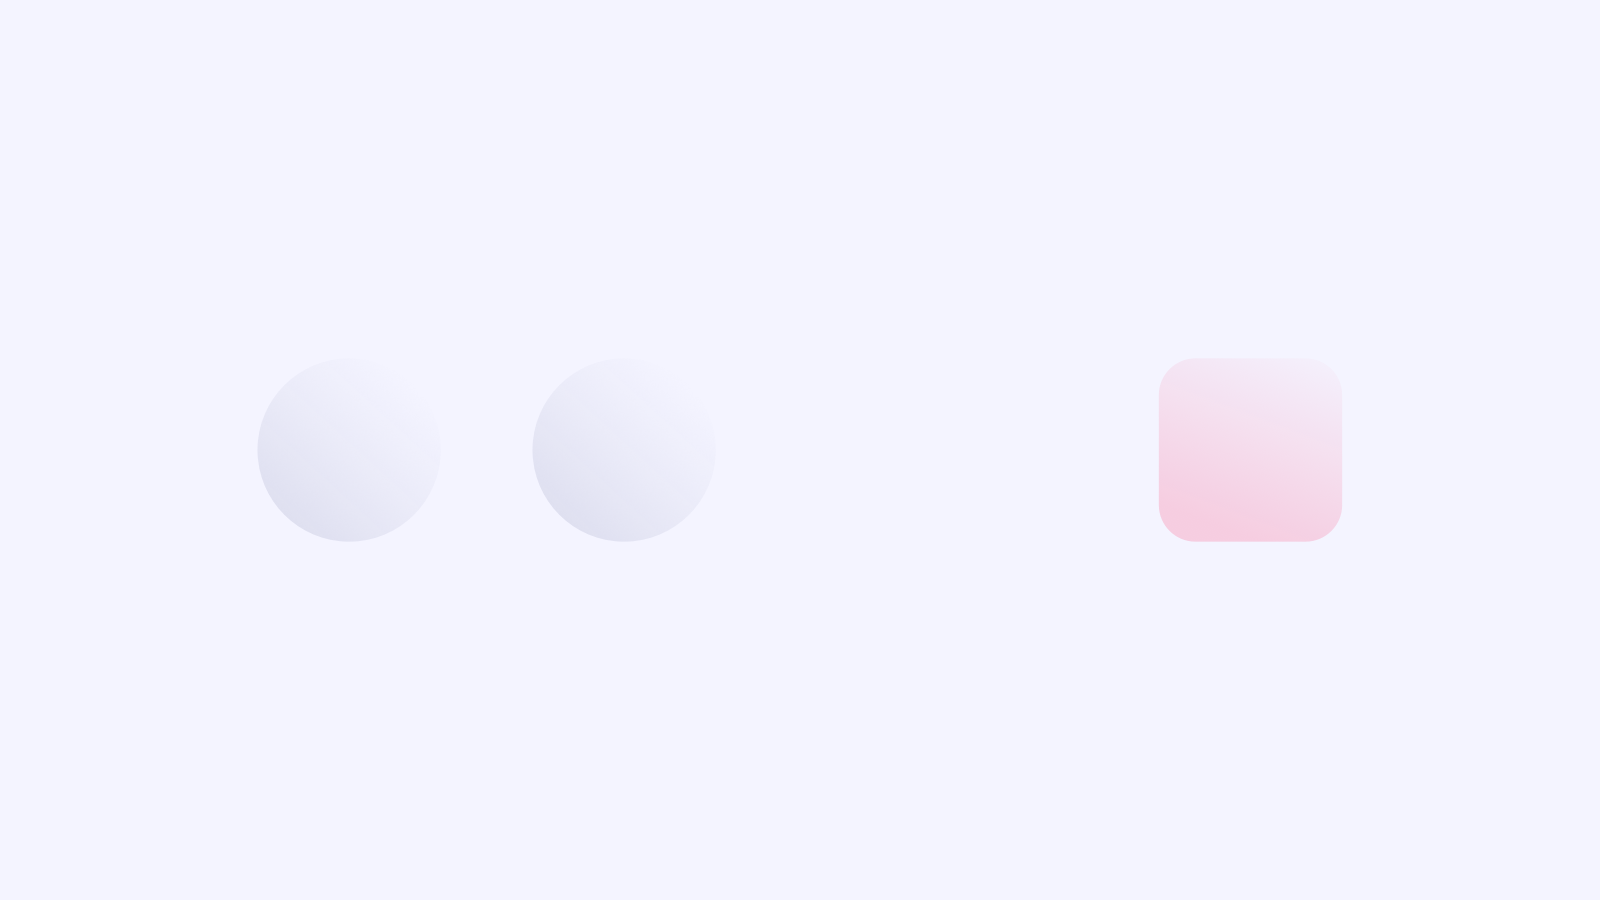 The rounded circles are together, so they are related. The square is further away, so it belongs to a different content type.